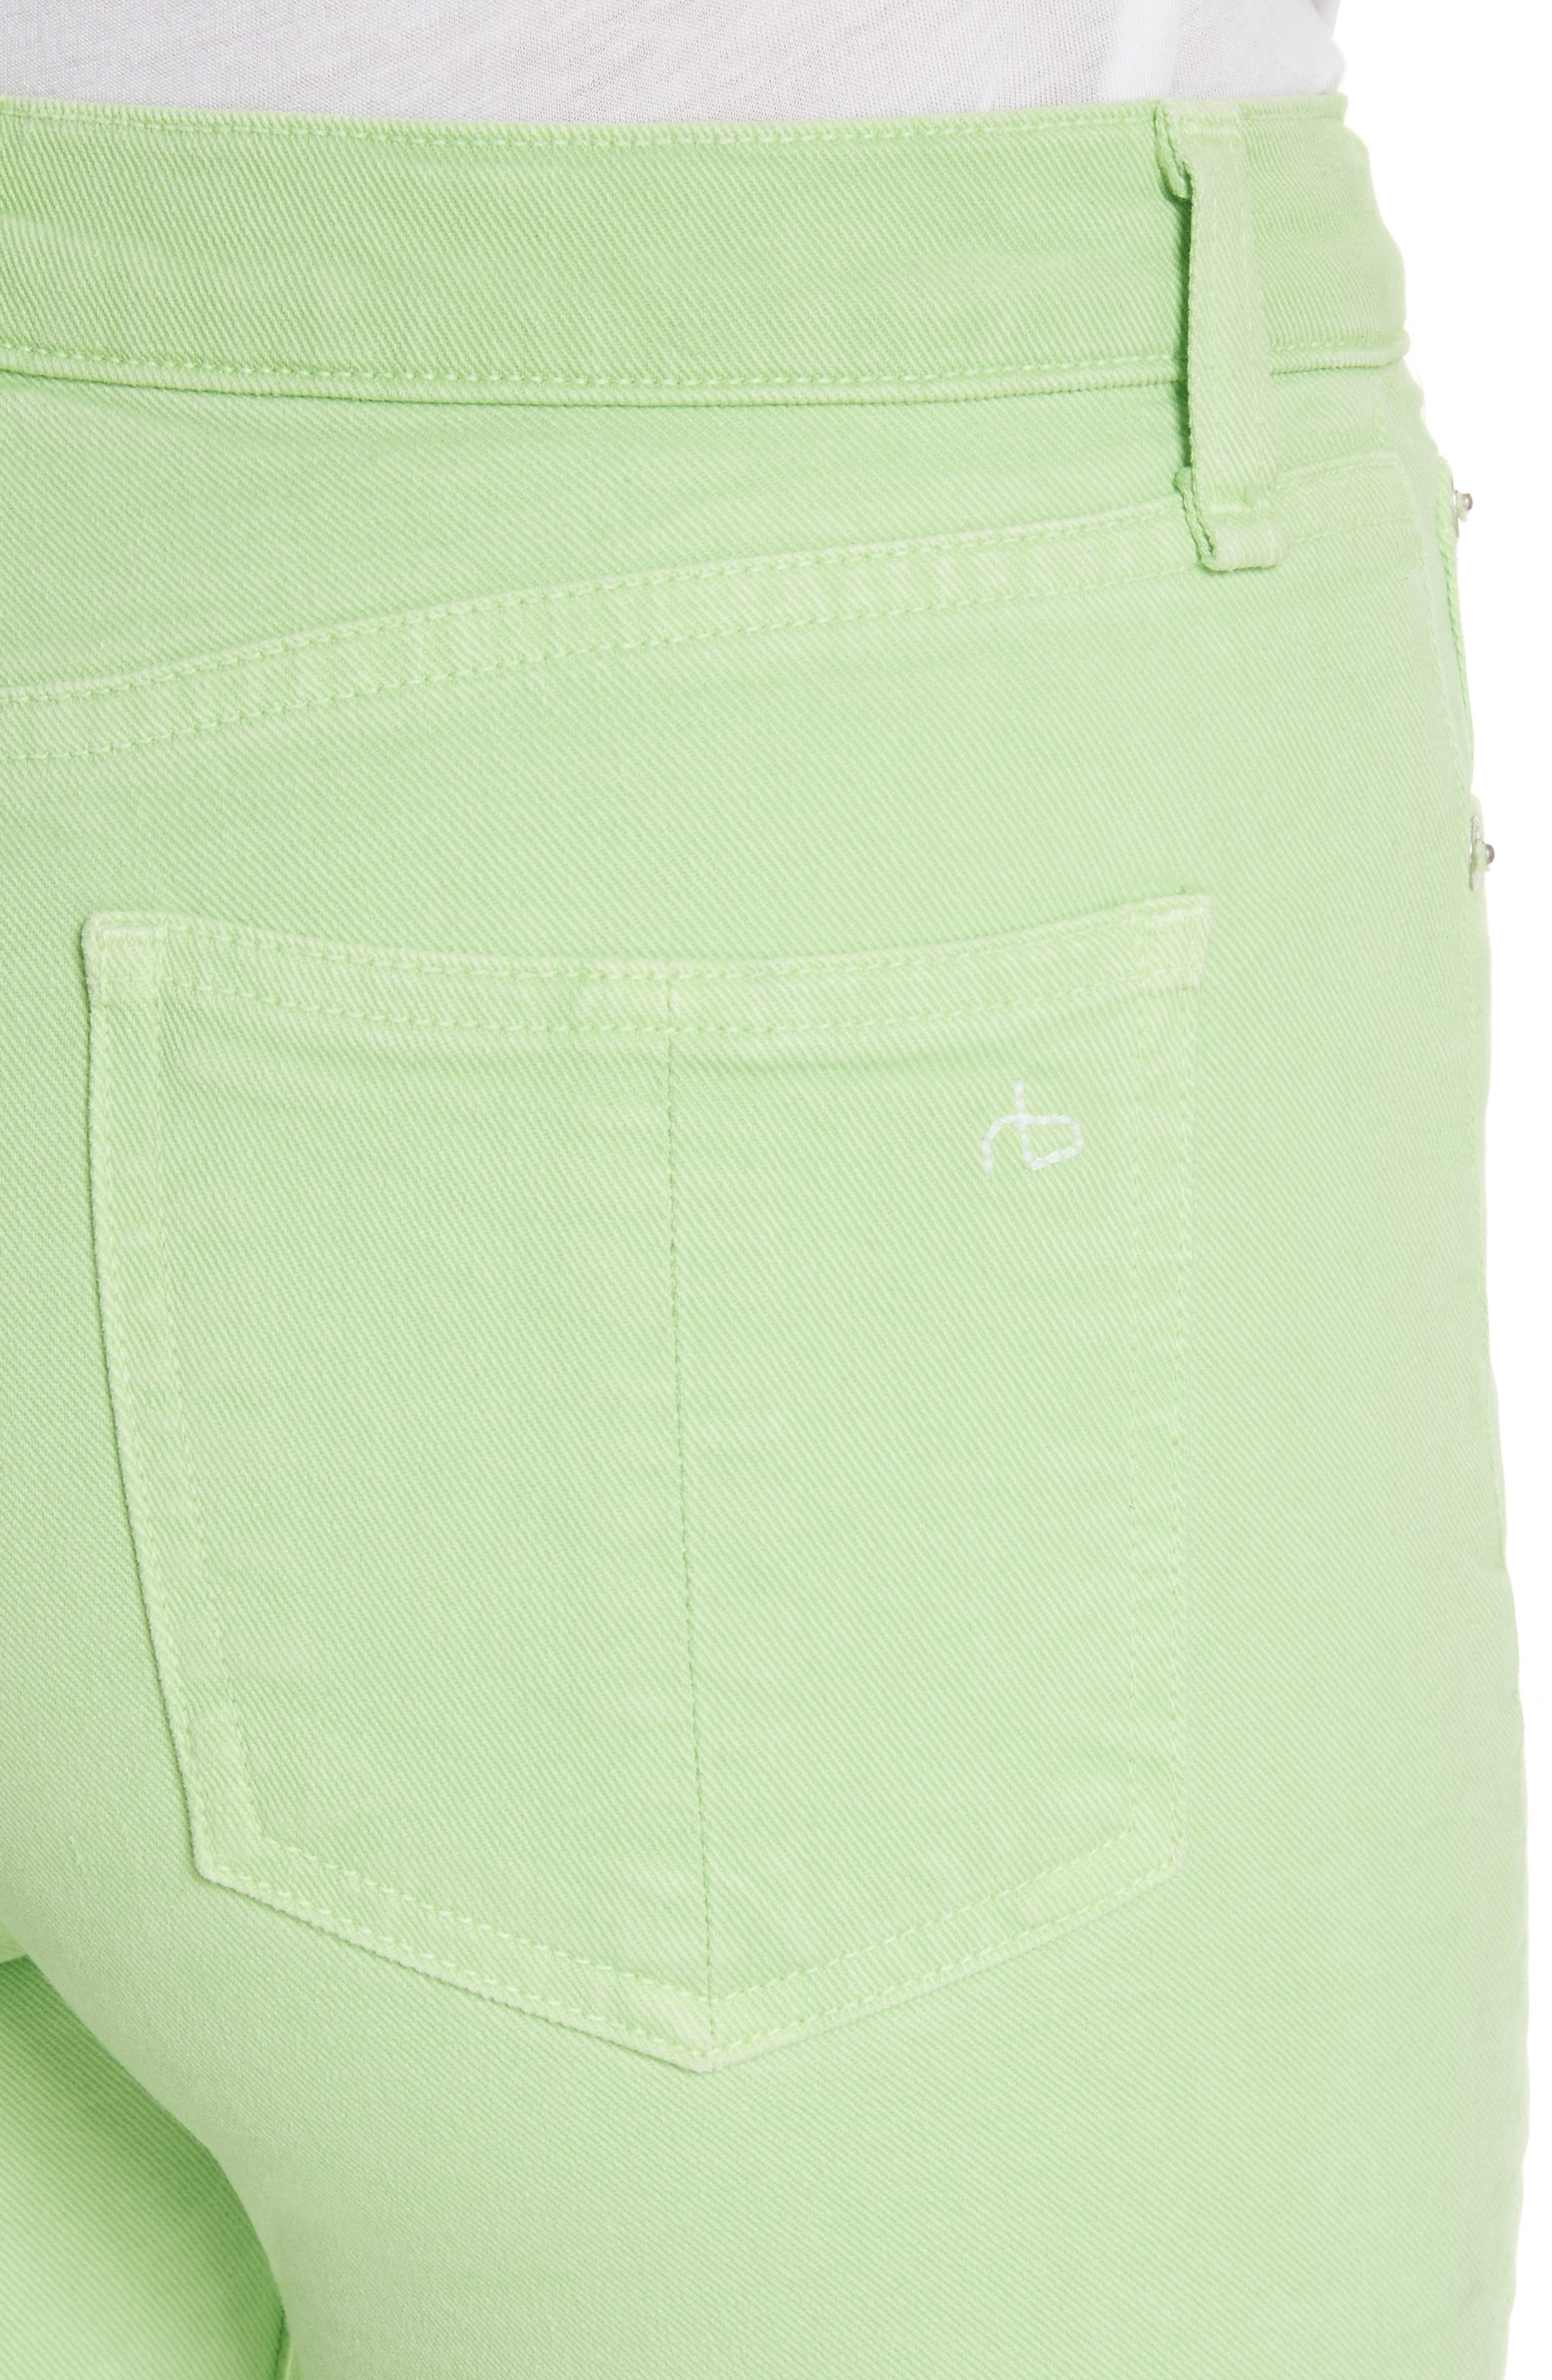 High Rise Skinny Jeans,                             Alternate thumbnail 4, color,                             Lime